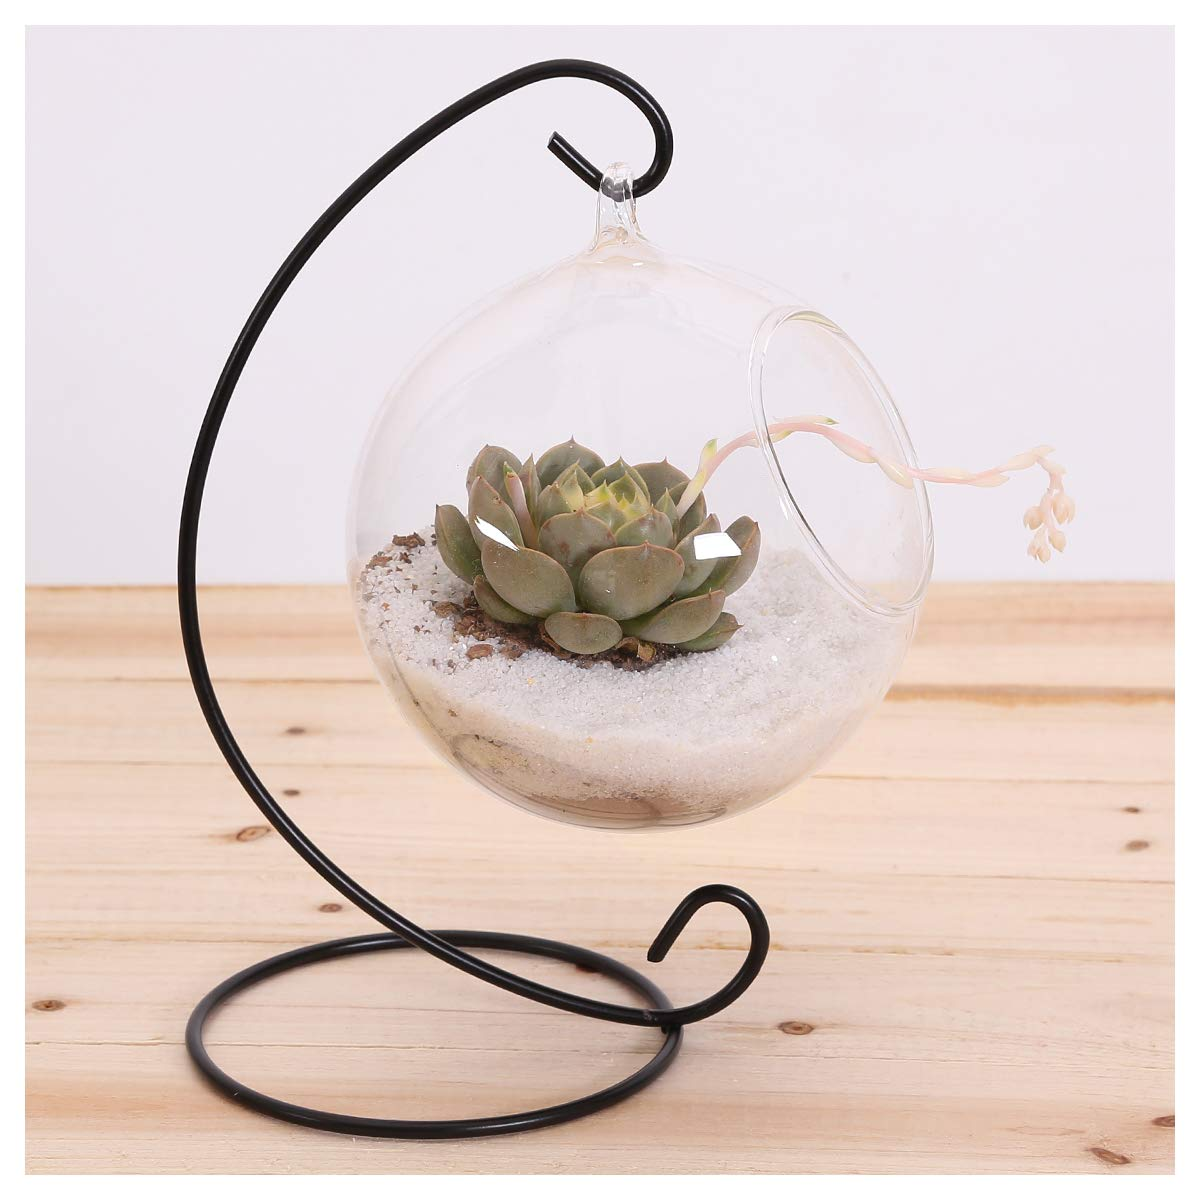 10L0L Charming Clear Hanging Glass Ball Vase Air Plant Terrarium Kit/Succulent Flowerpot Container w/Black Metal Stand (Big)